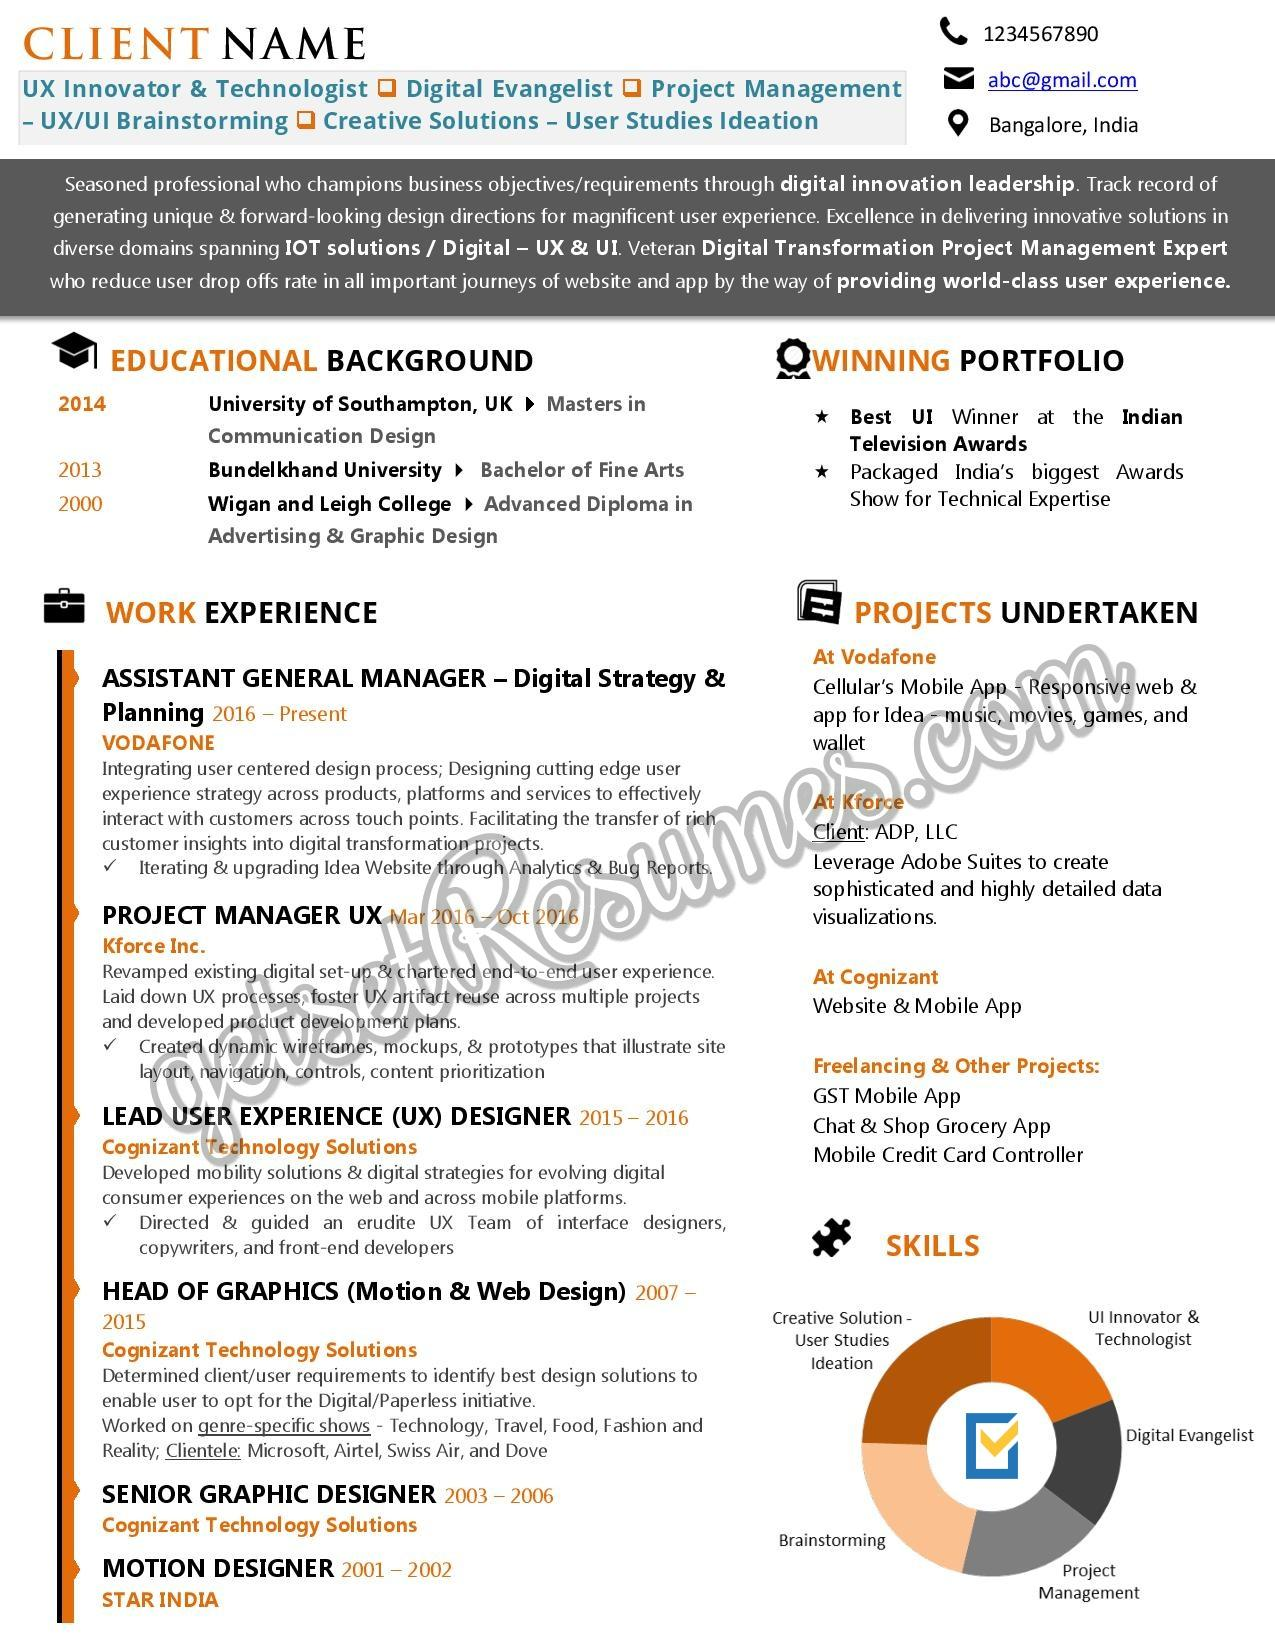 Infographic Resume for a UX Professional